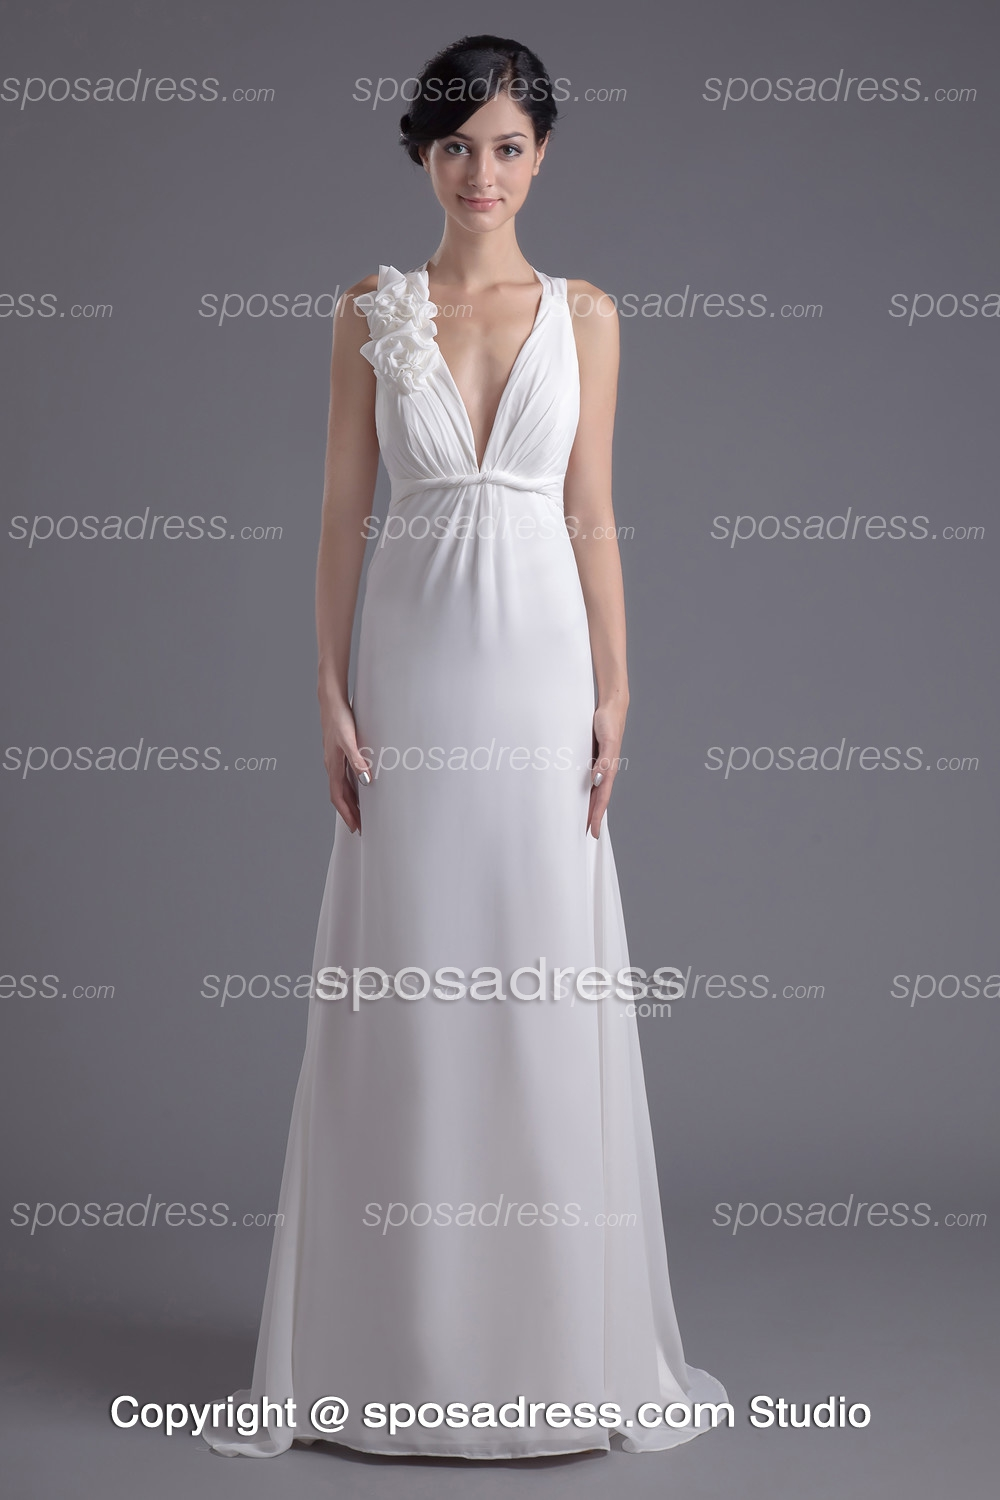 2013 Simple Style Deep V-neck White A-line Prom Dress - Sposadress.com